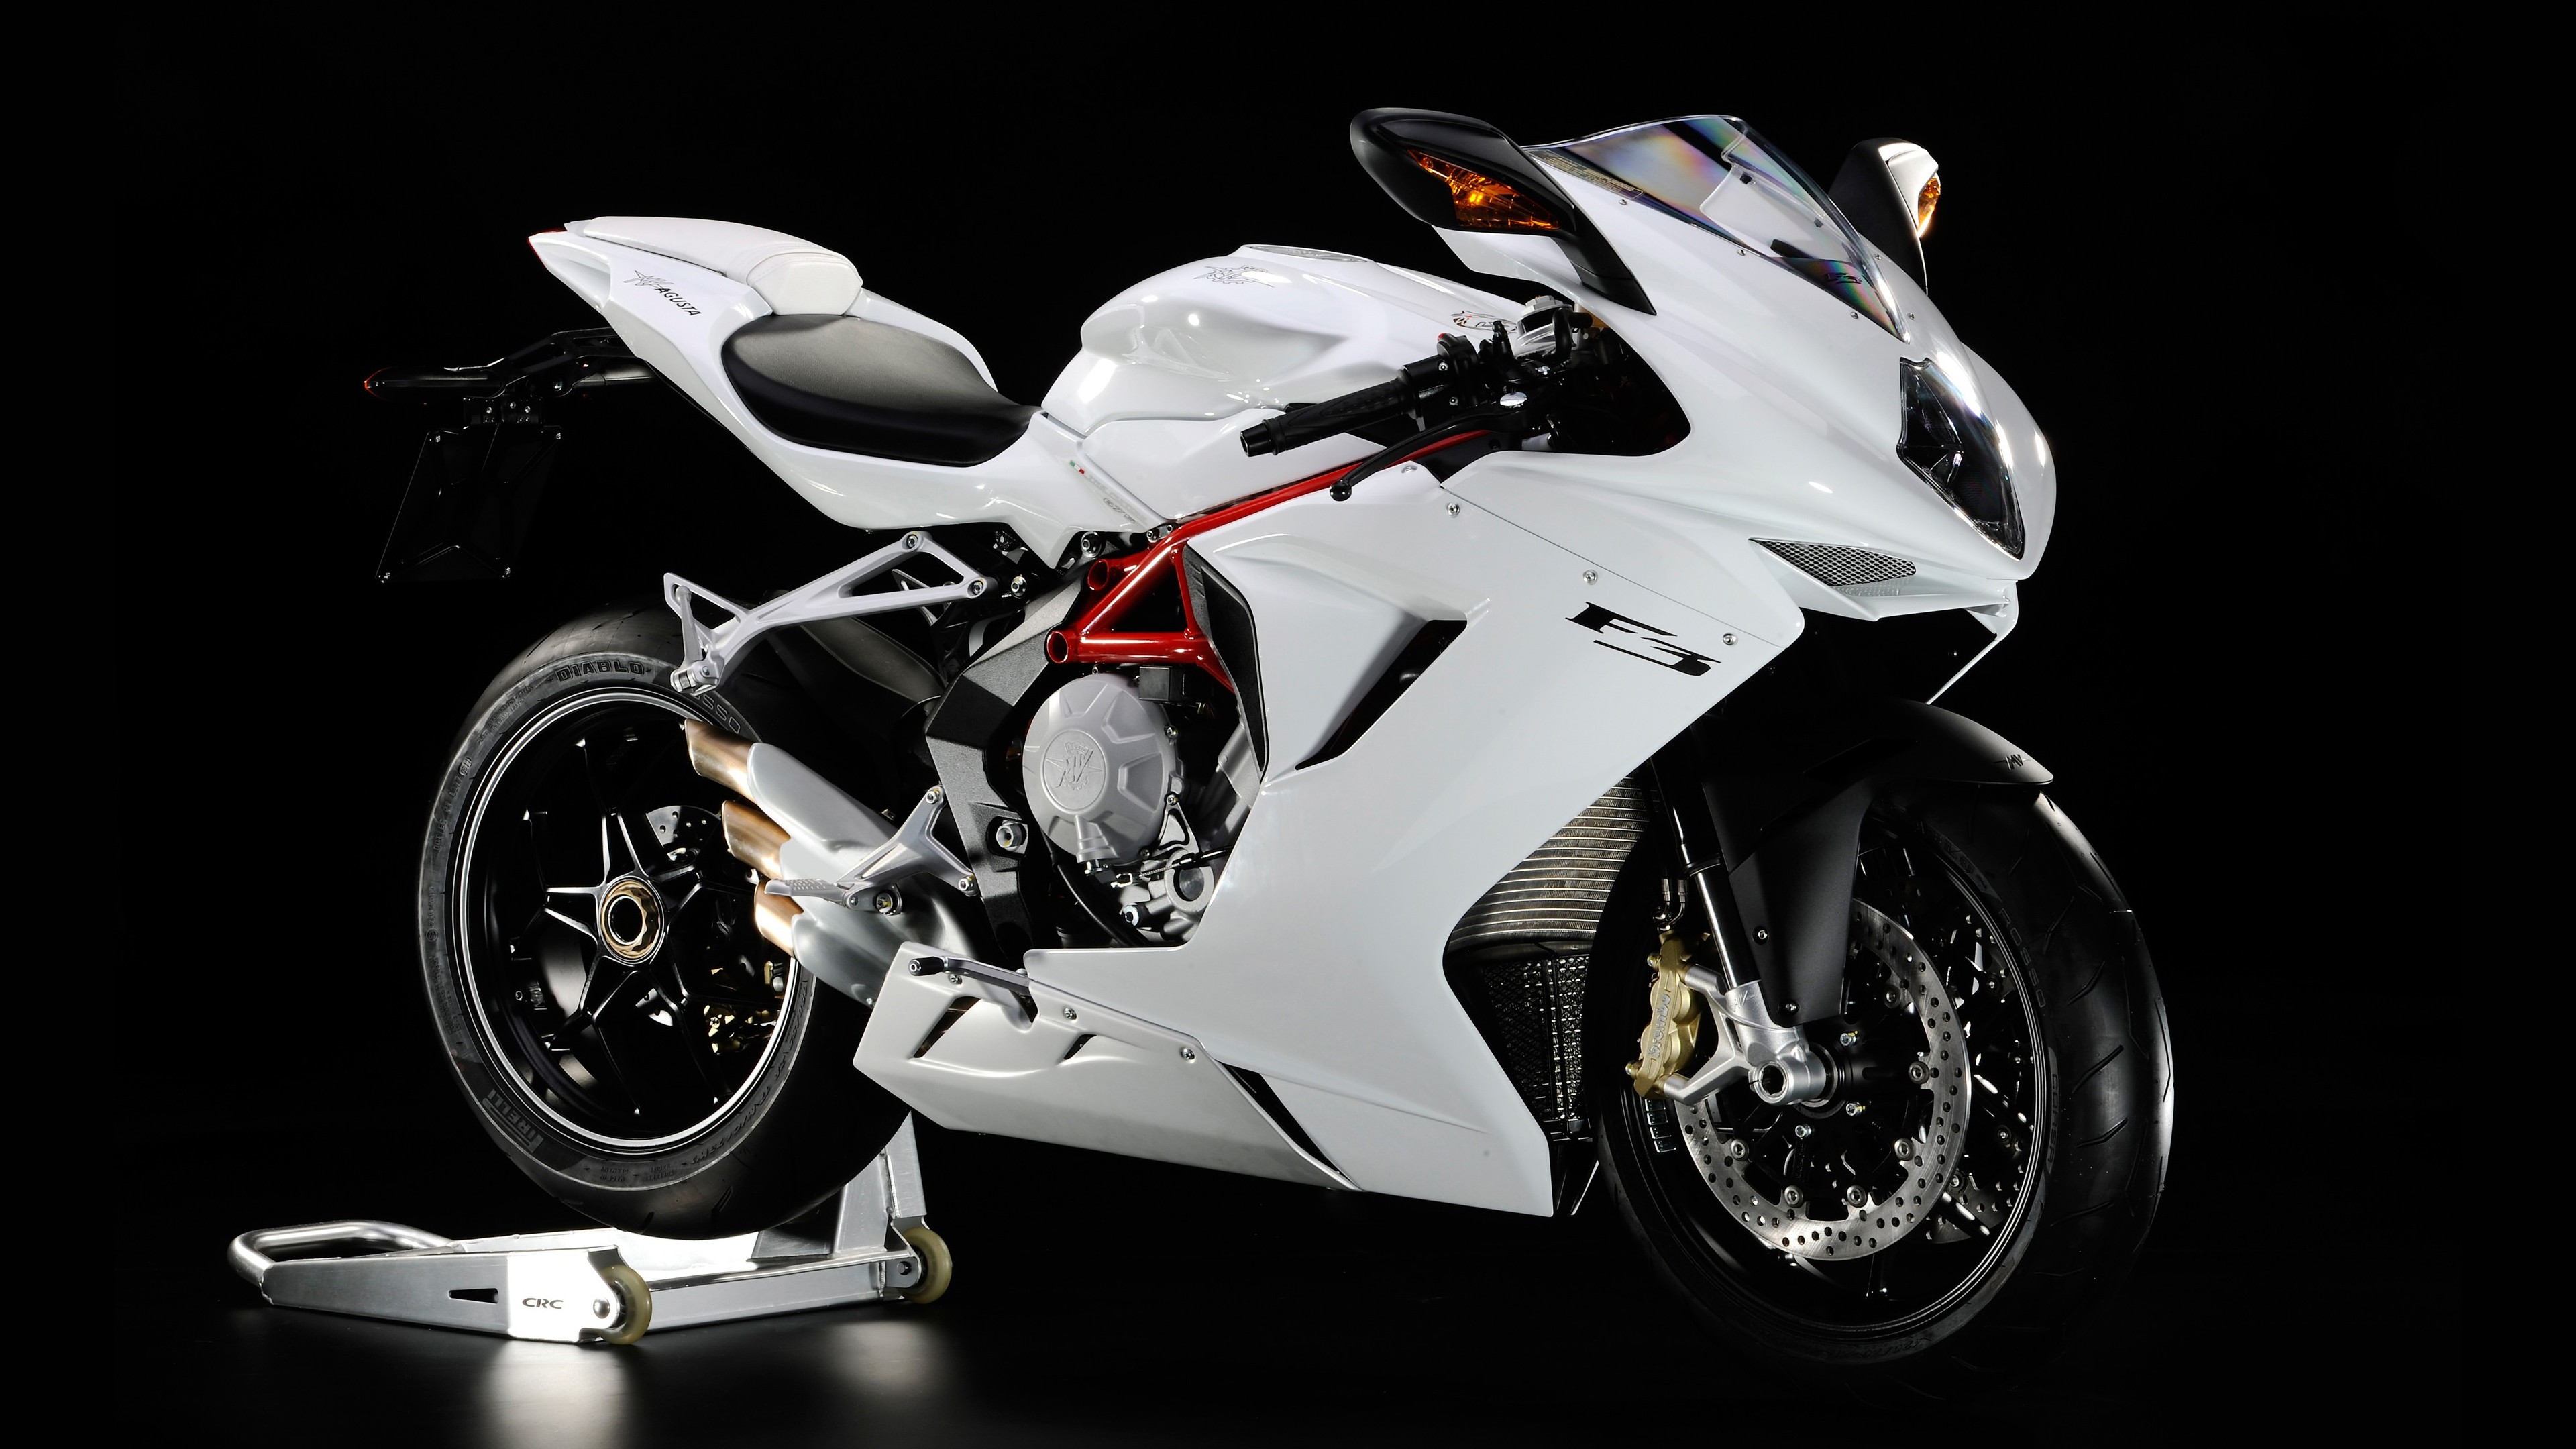 mv agusta, hd bikes, 4k wallpapers, images, backgrounds, photos and